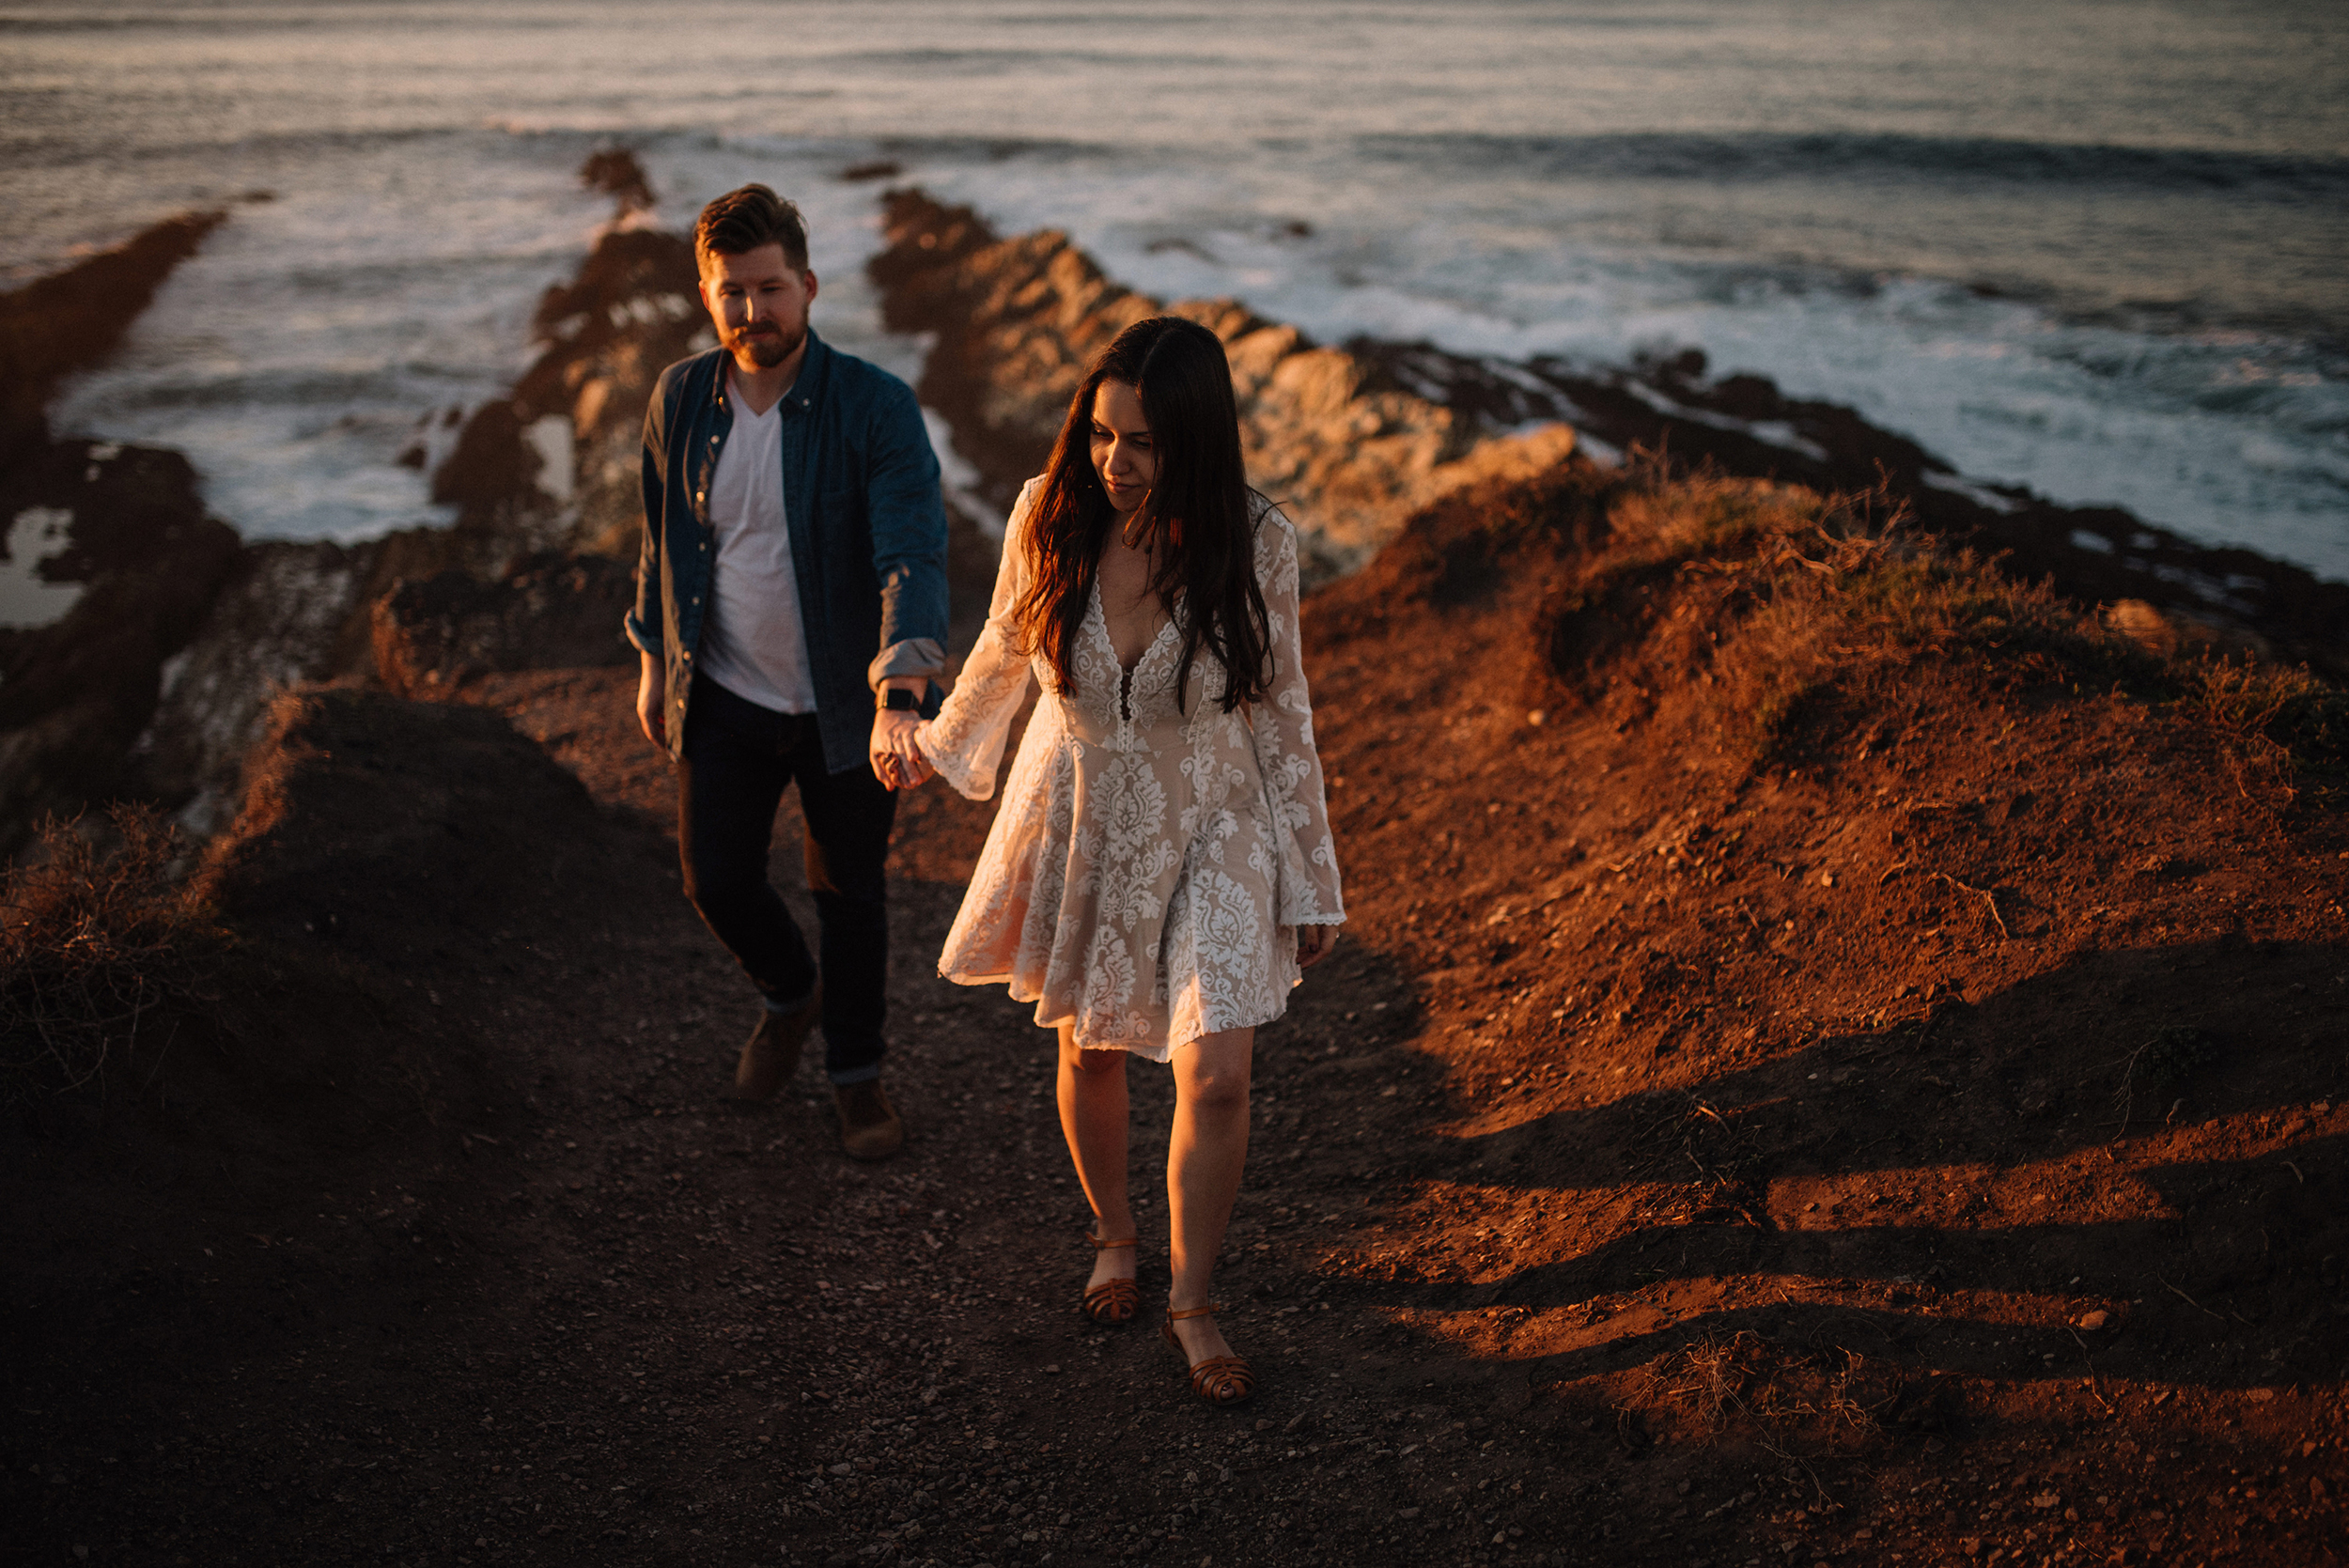 Colby-and-Jess-Adventure-Engagement-Photography-Morro-Bay-Montana-de-oro-California168.jpg